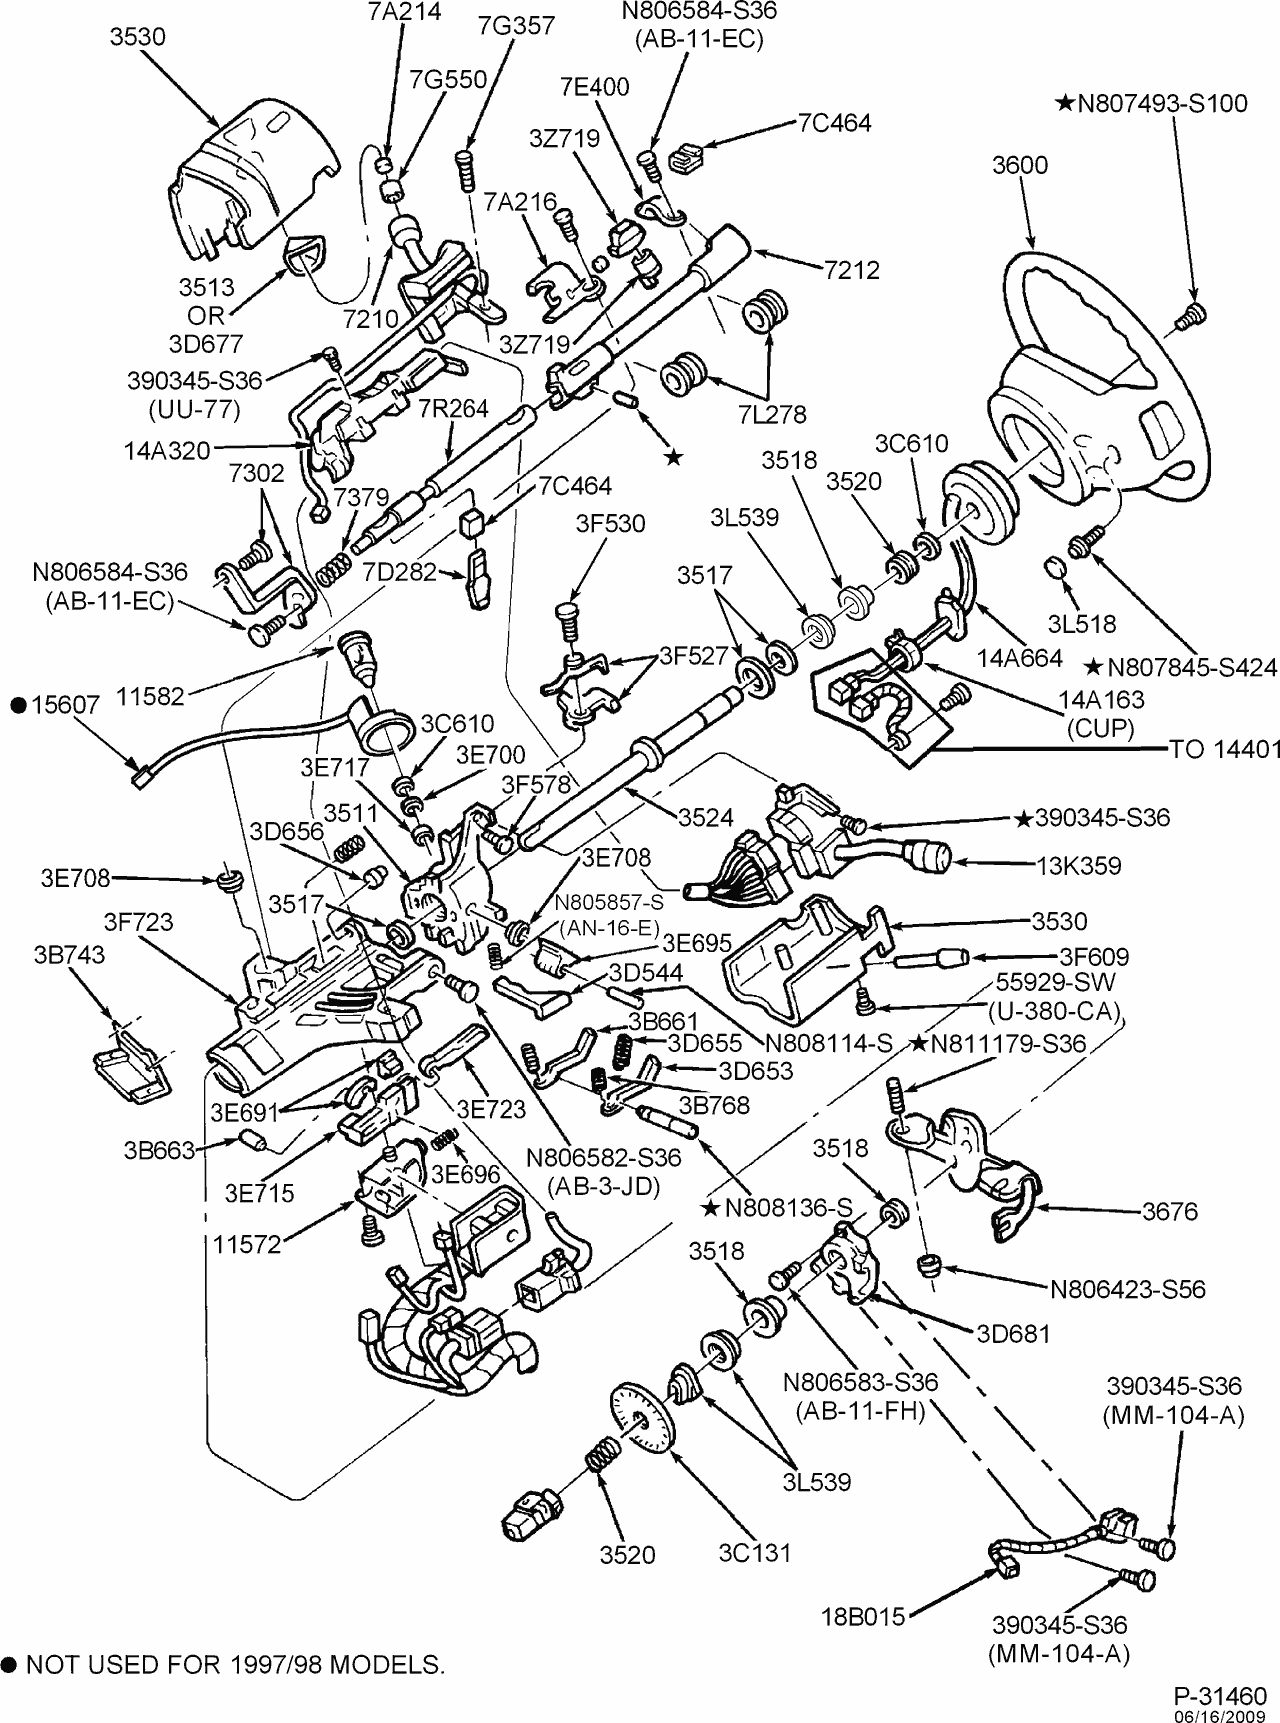 2005 Chrysler 300 Touring Suspension Diagram Wiring 2006 Ford Ranger Door Latch Free Download 2003 Town And Country Front Exploded View Results